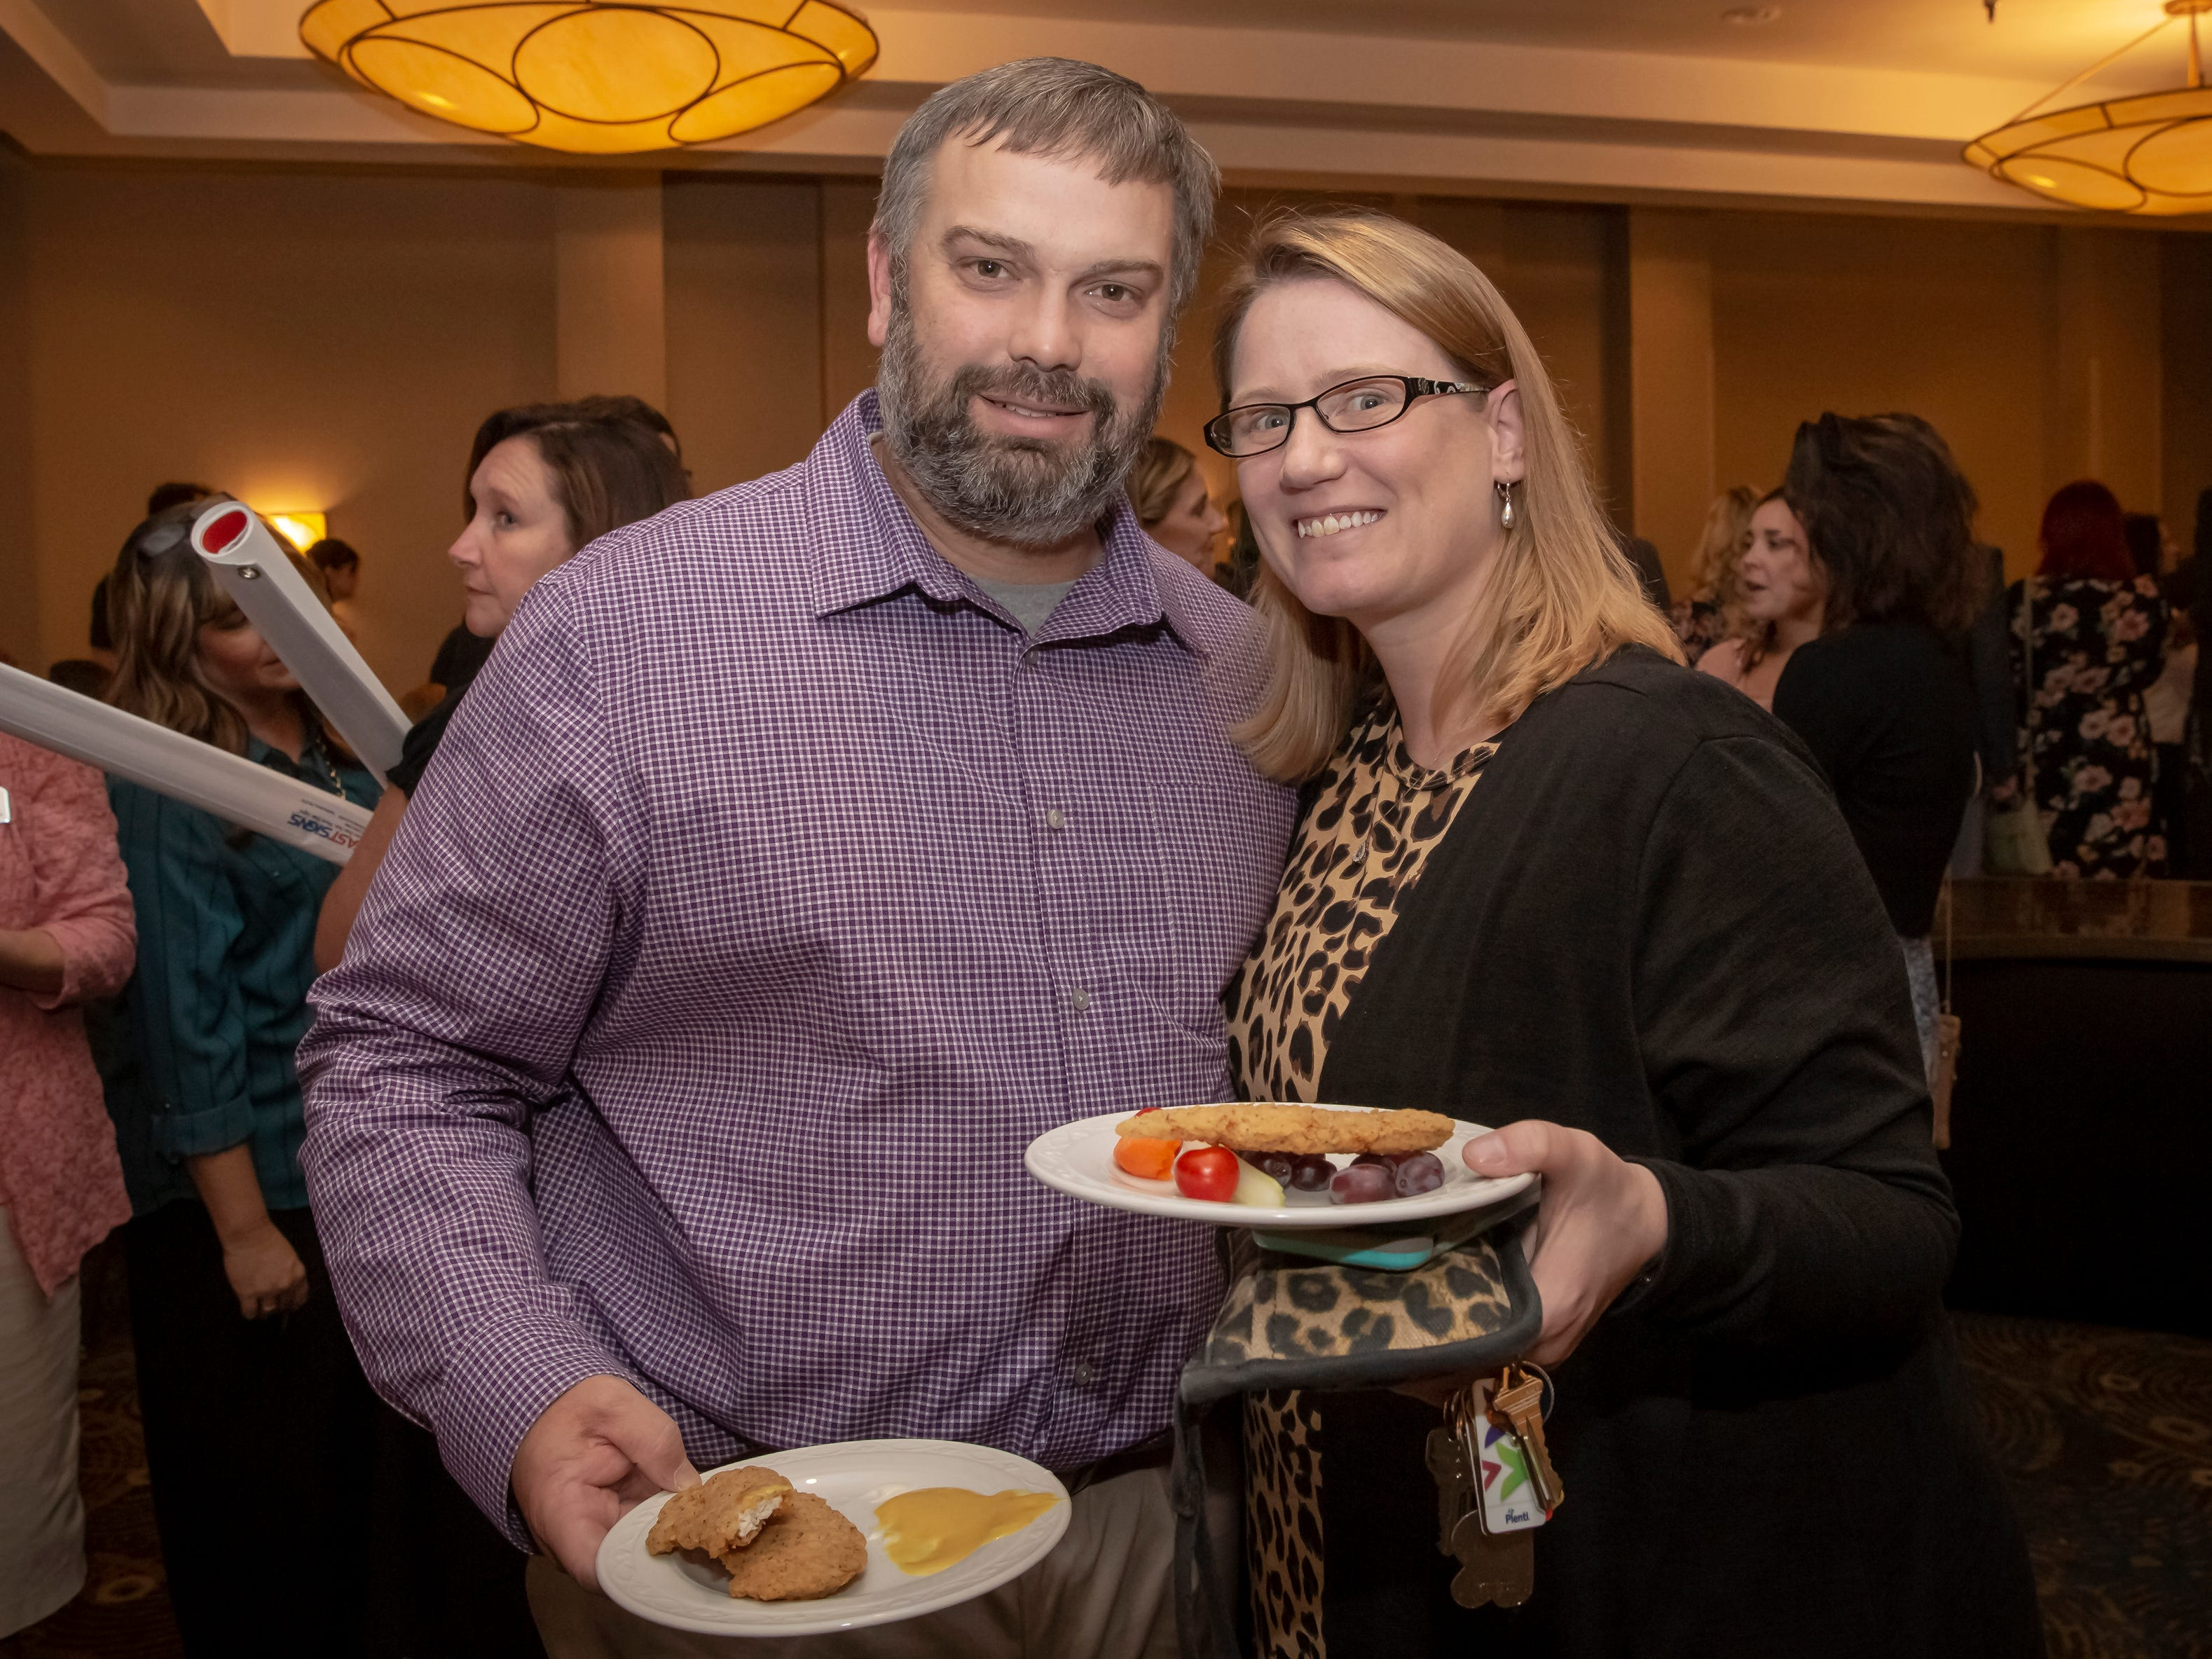 Jason and Rachel Gray at the 24th annual Ruthie awards held at DoubleTree on Old Fort Parkway.